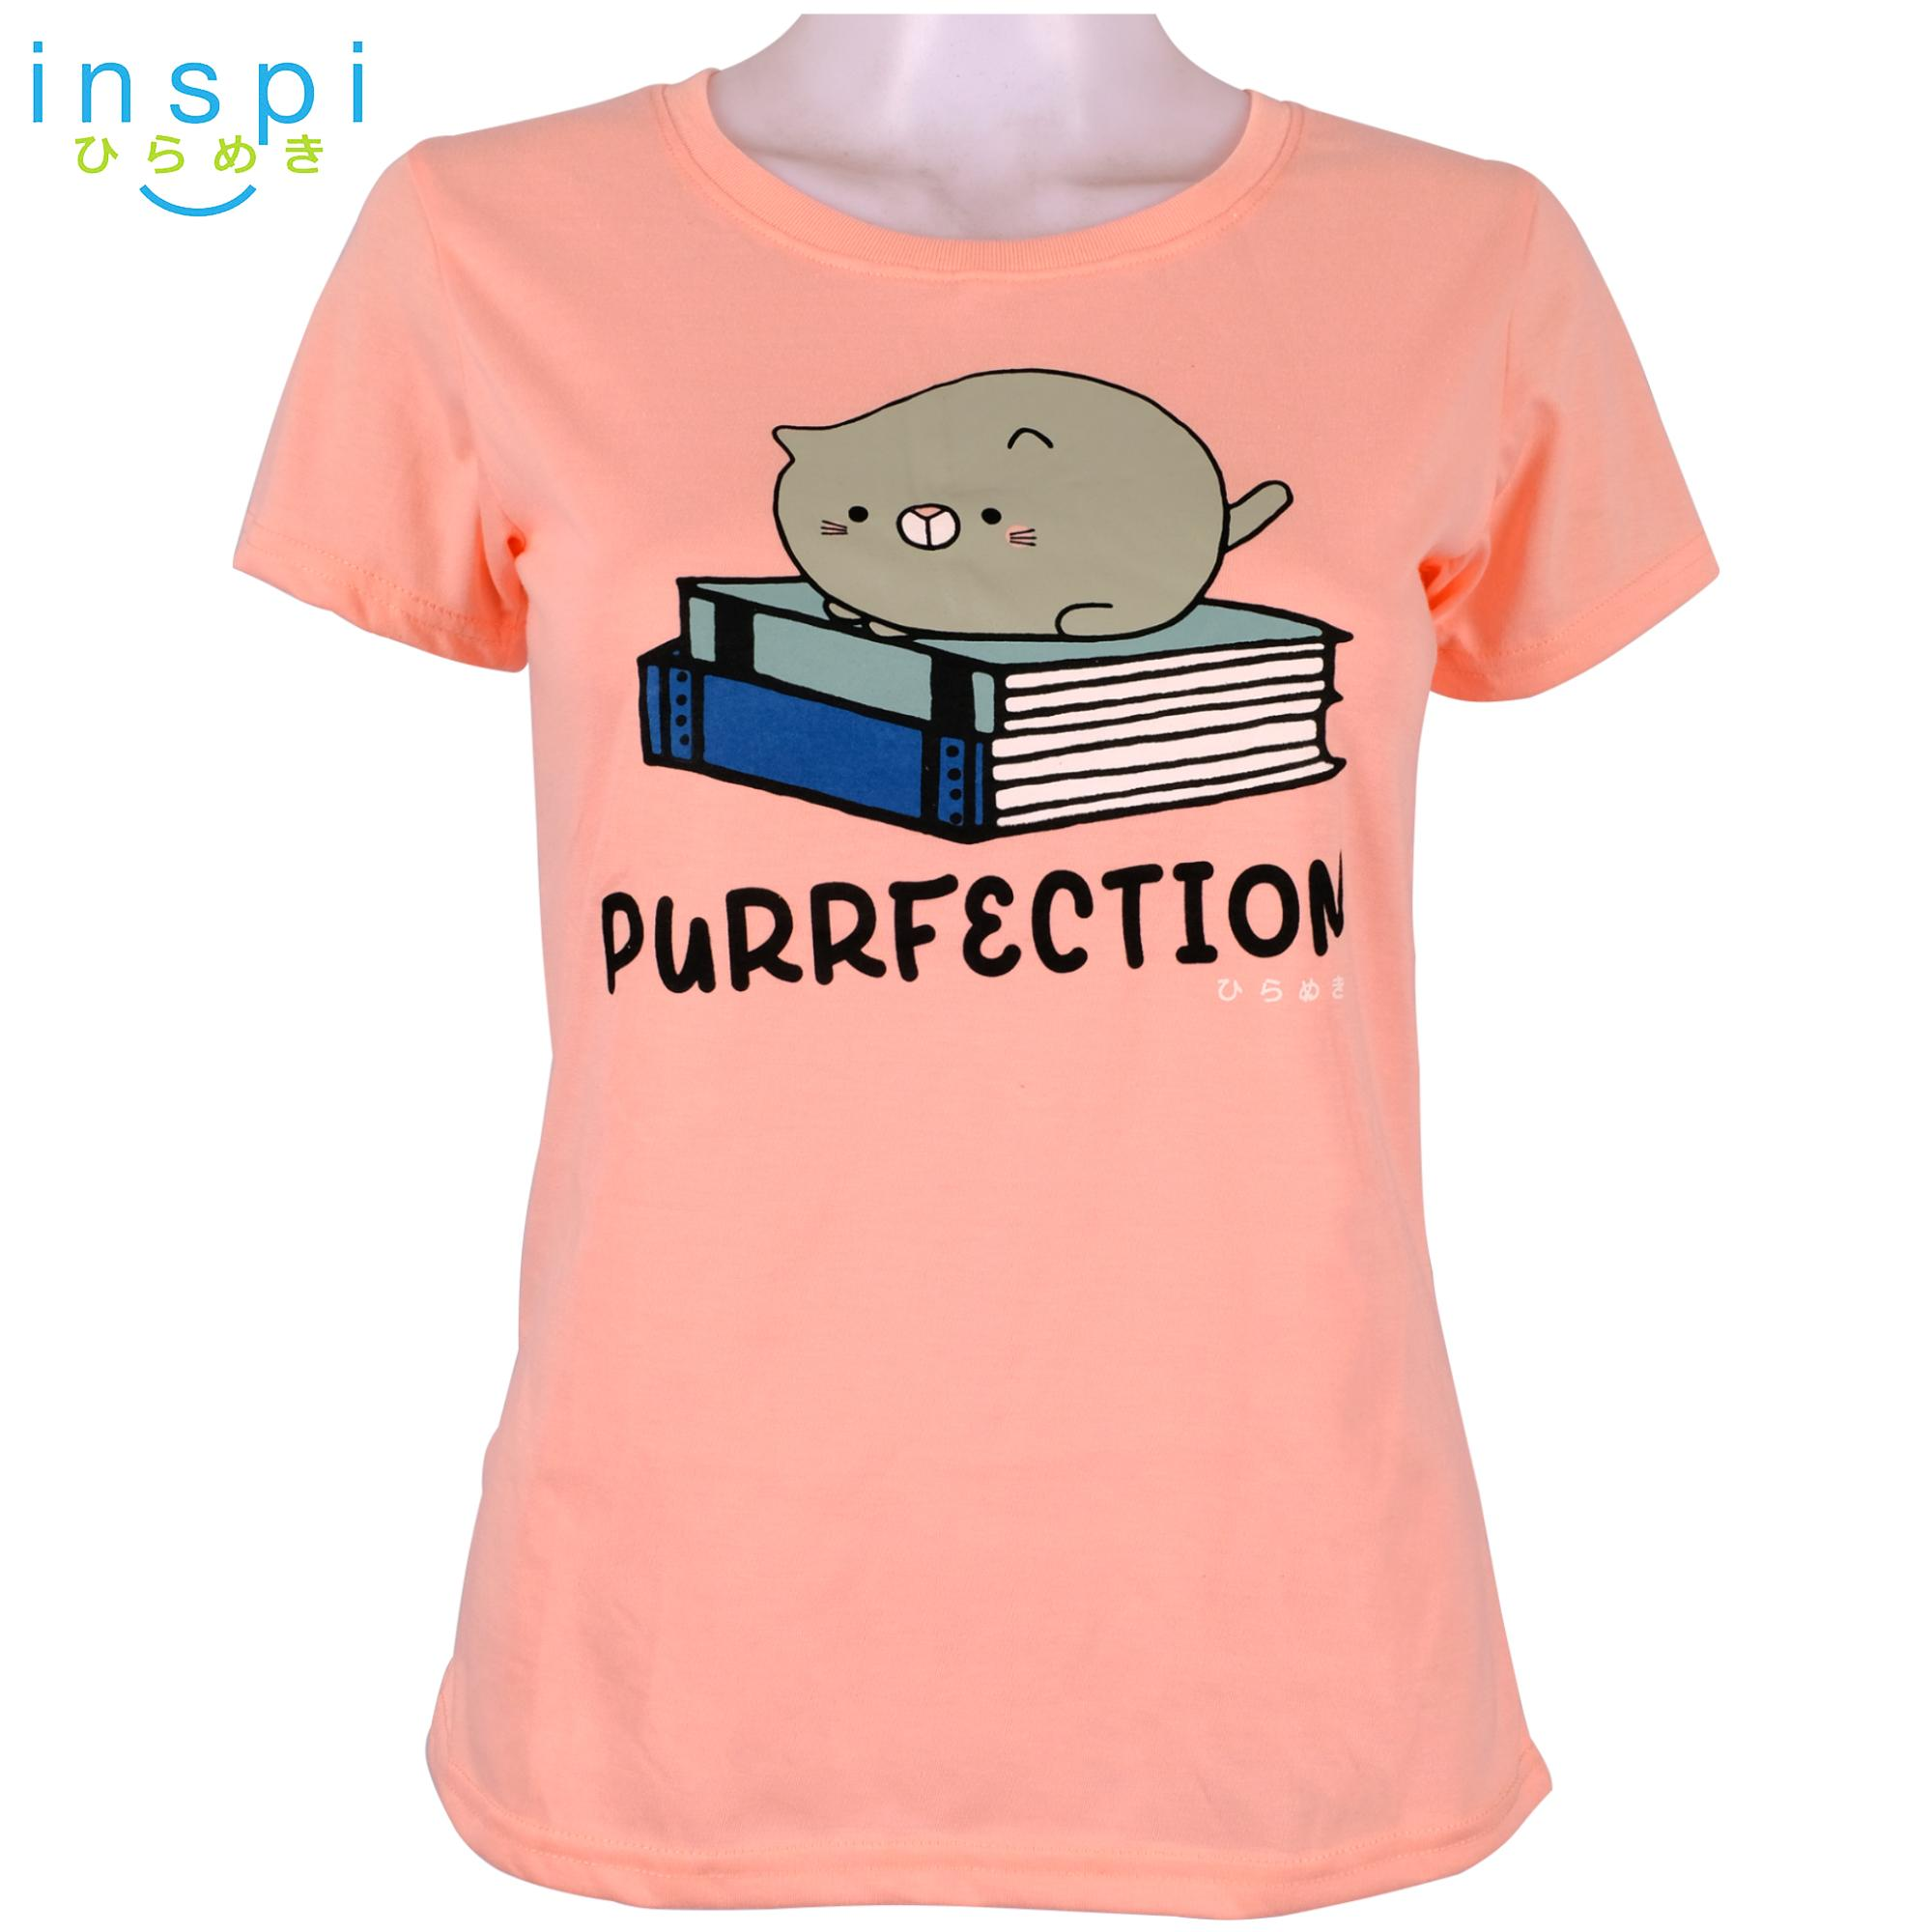 1ed6059e6d1e0 INSPI Tees Ladies Loose Fit Purrfection (Dairy Peach) tshirt printed  graphic tee t shirt